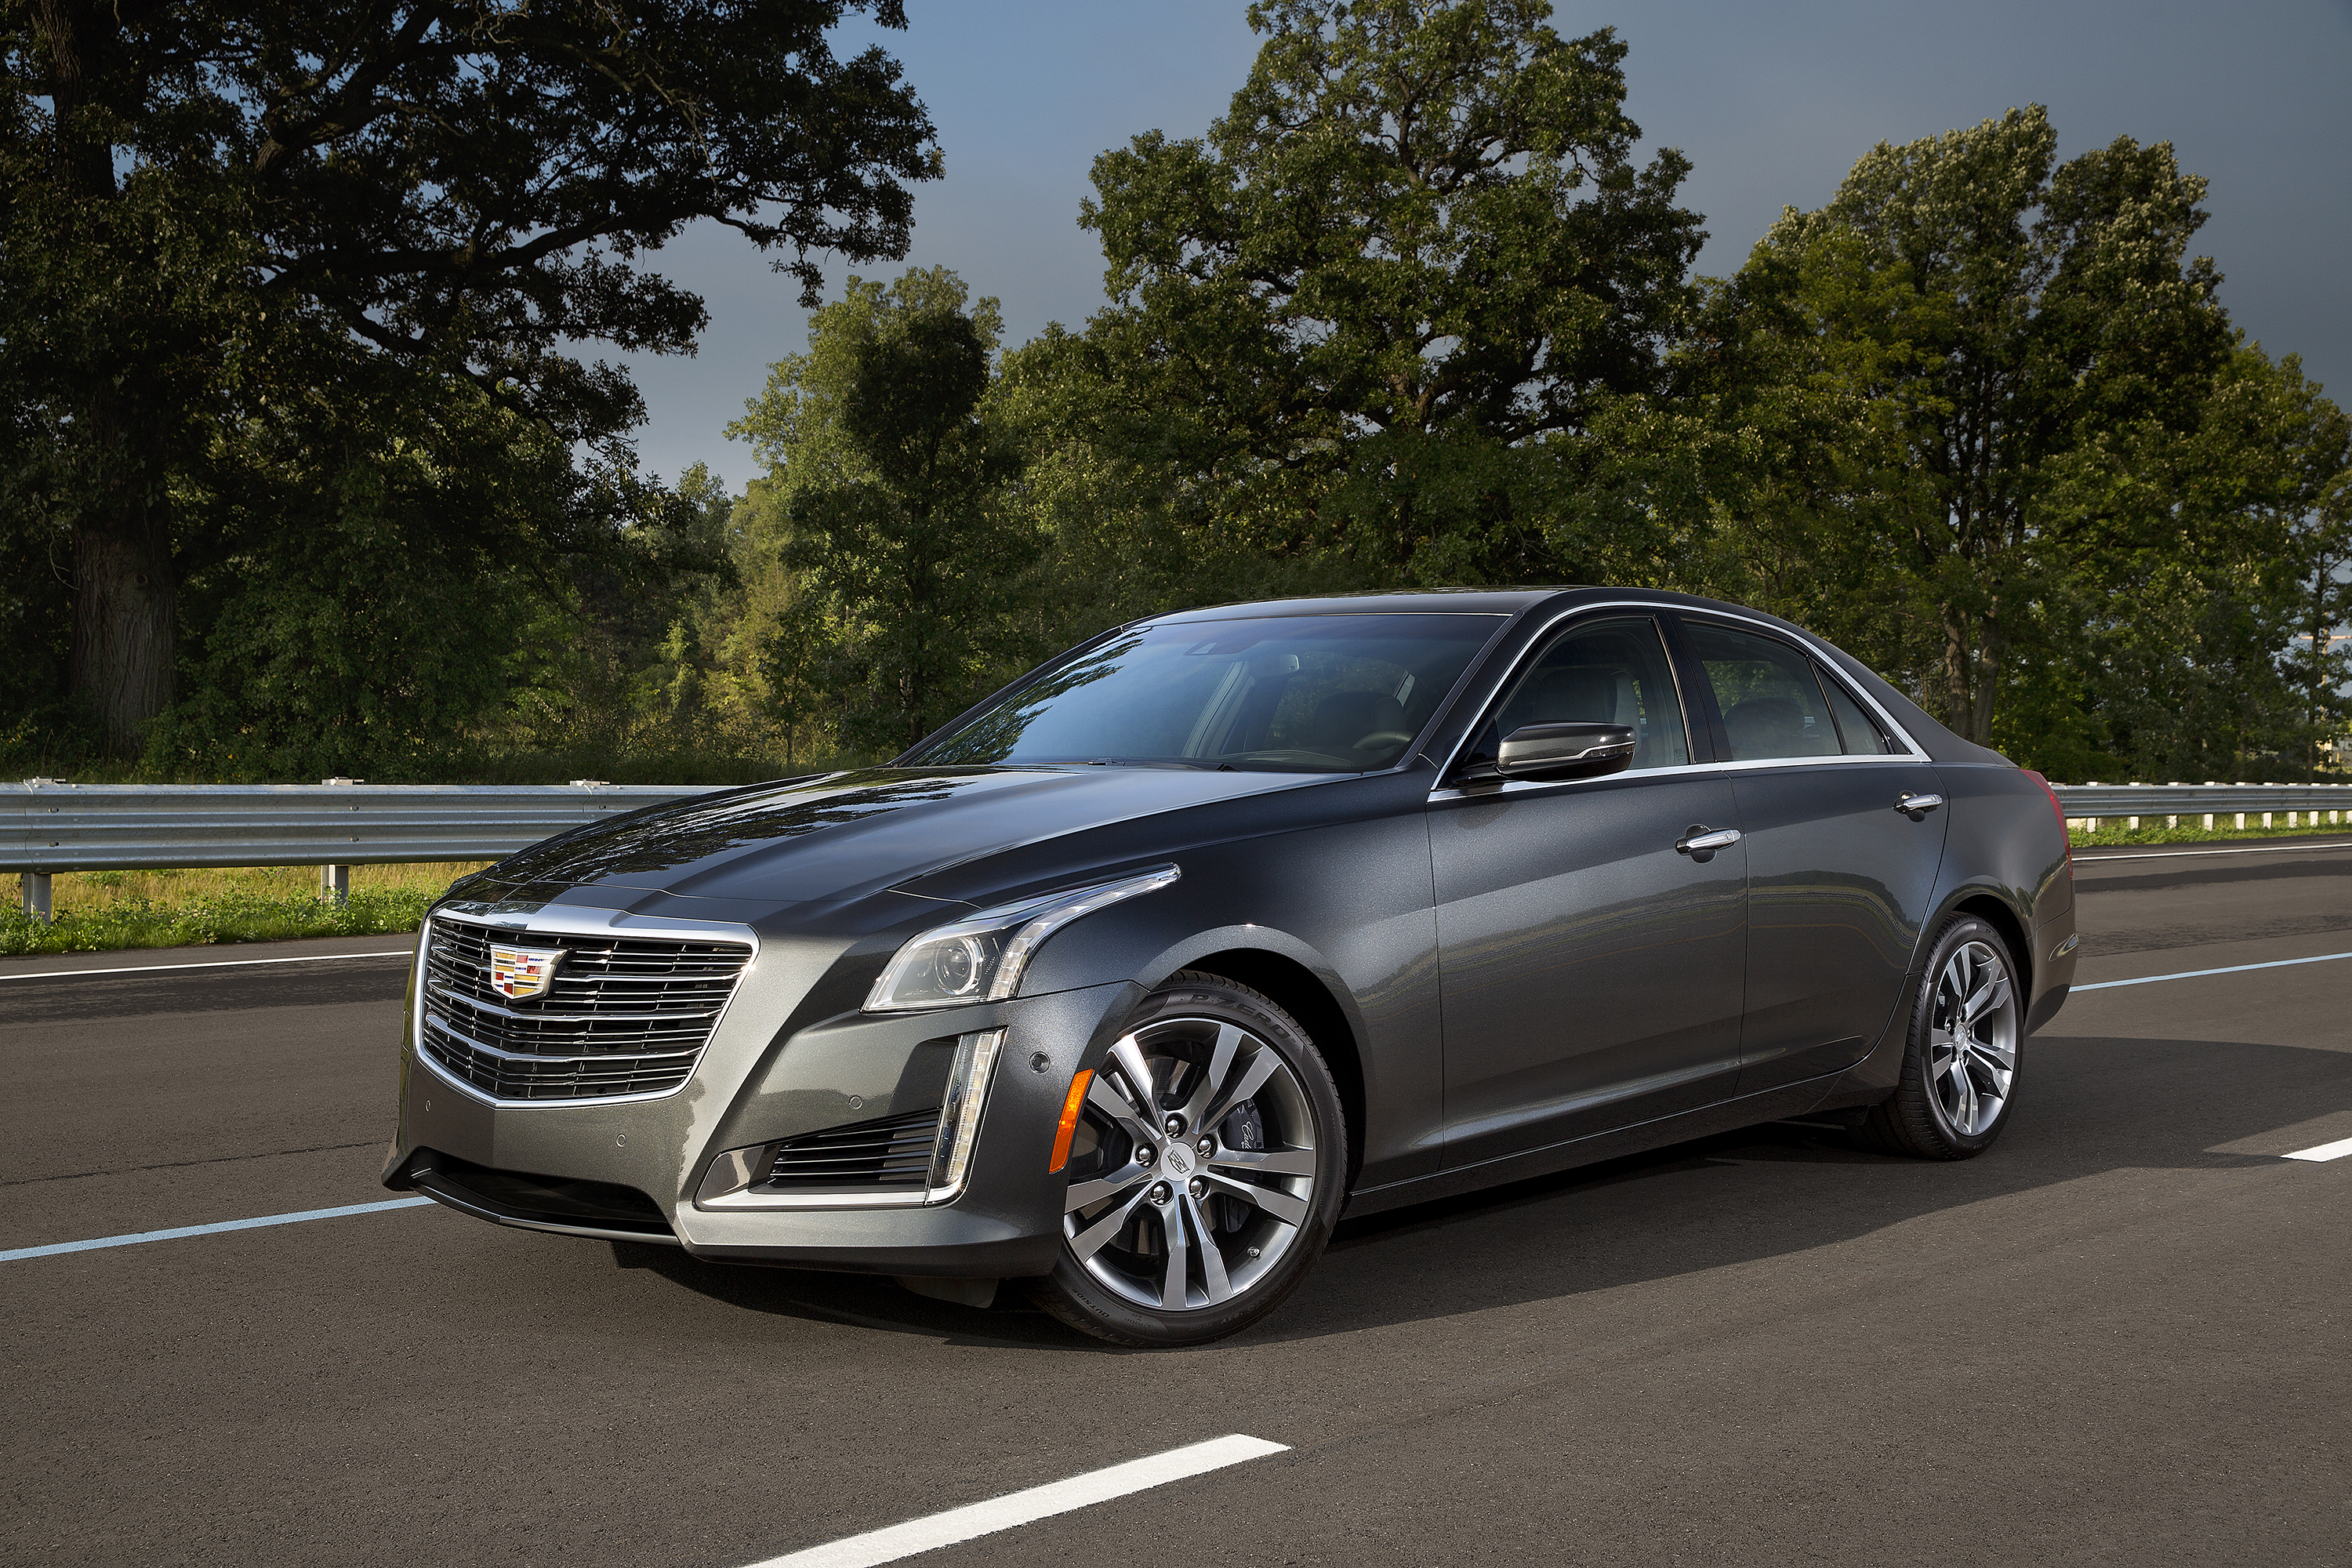 iii bcsseldorf cts turbo file luxury wiki cadillac frontansicht d september